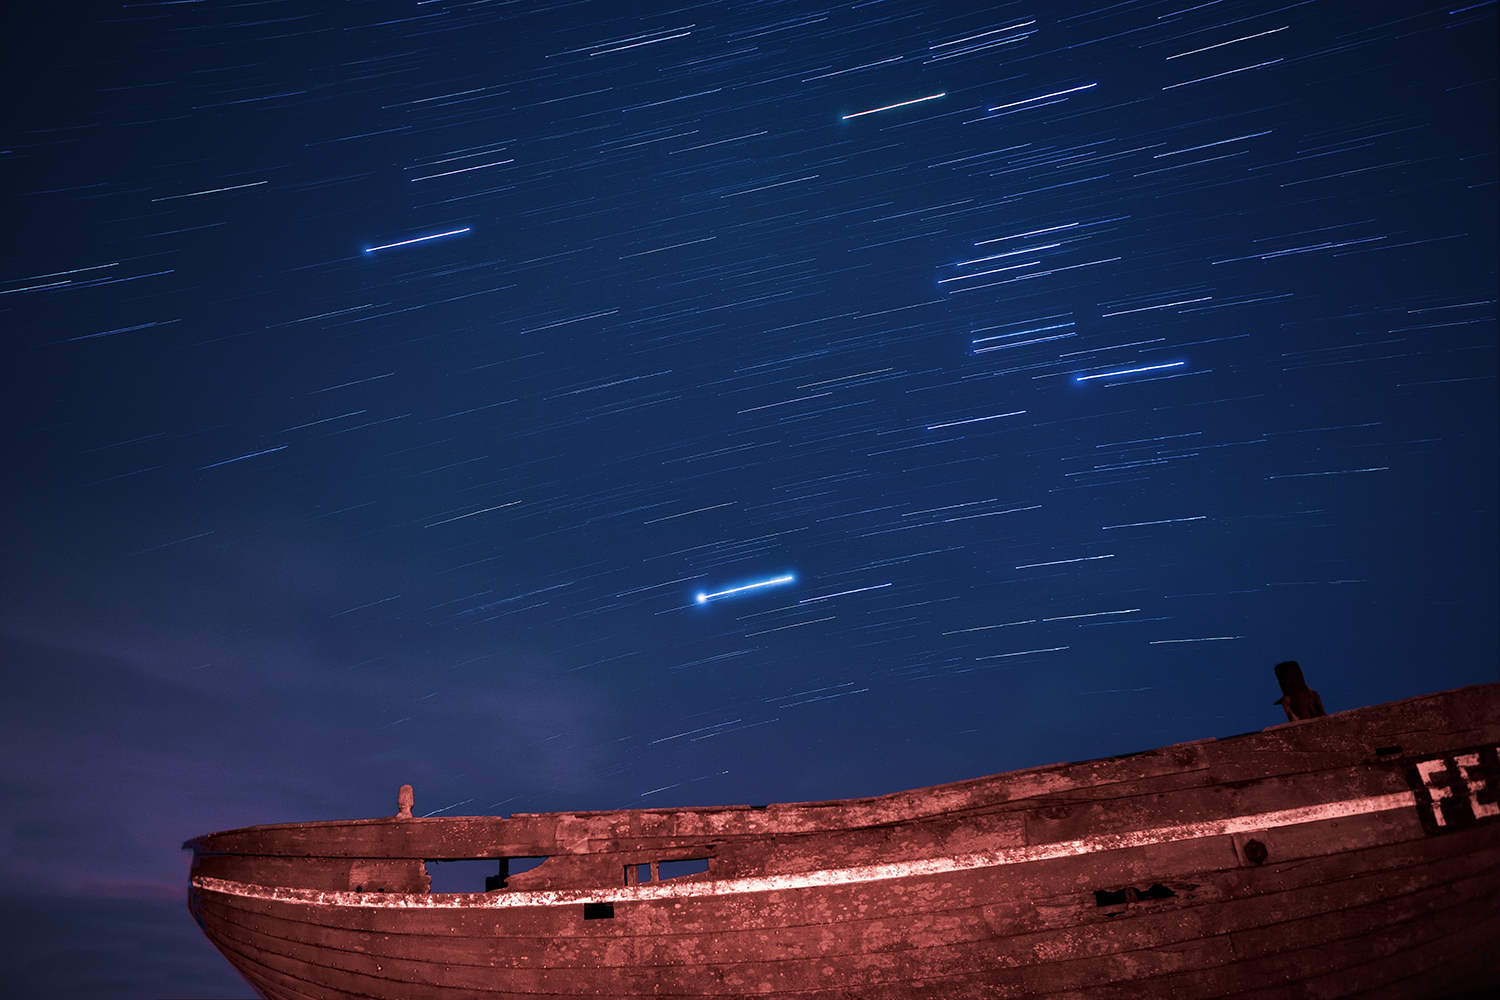 Dungeness Star Trails (40x 30 seconds exposures) - facing away from the North Star